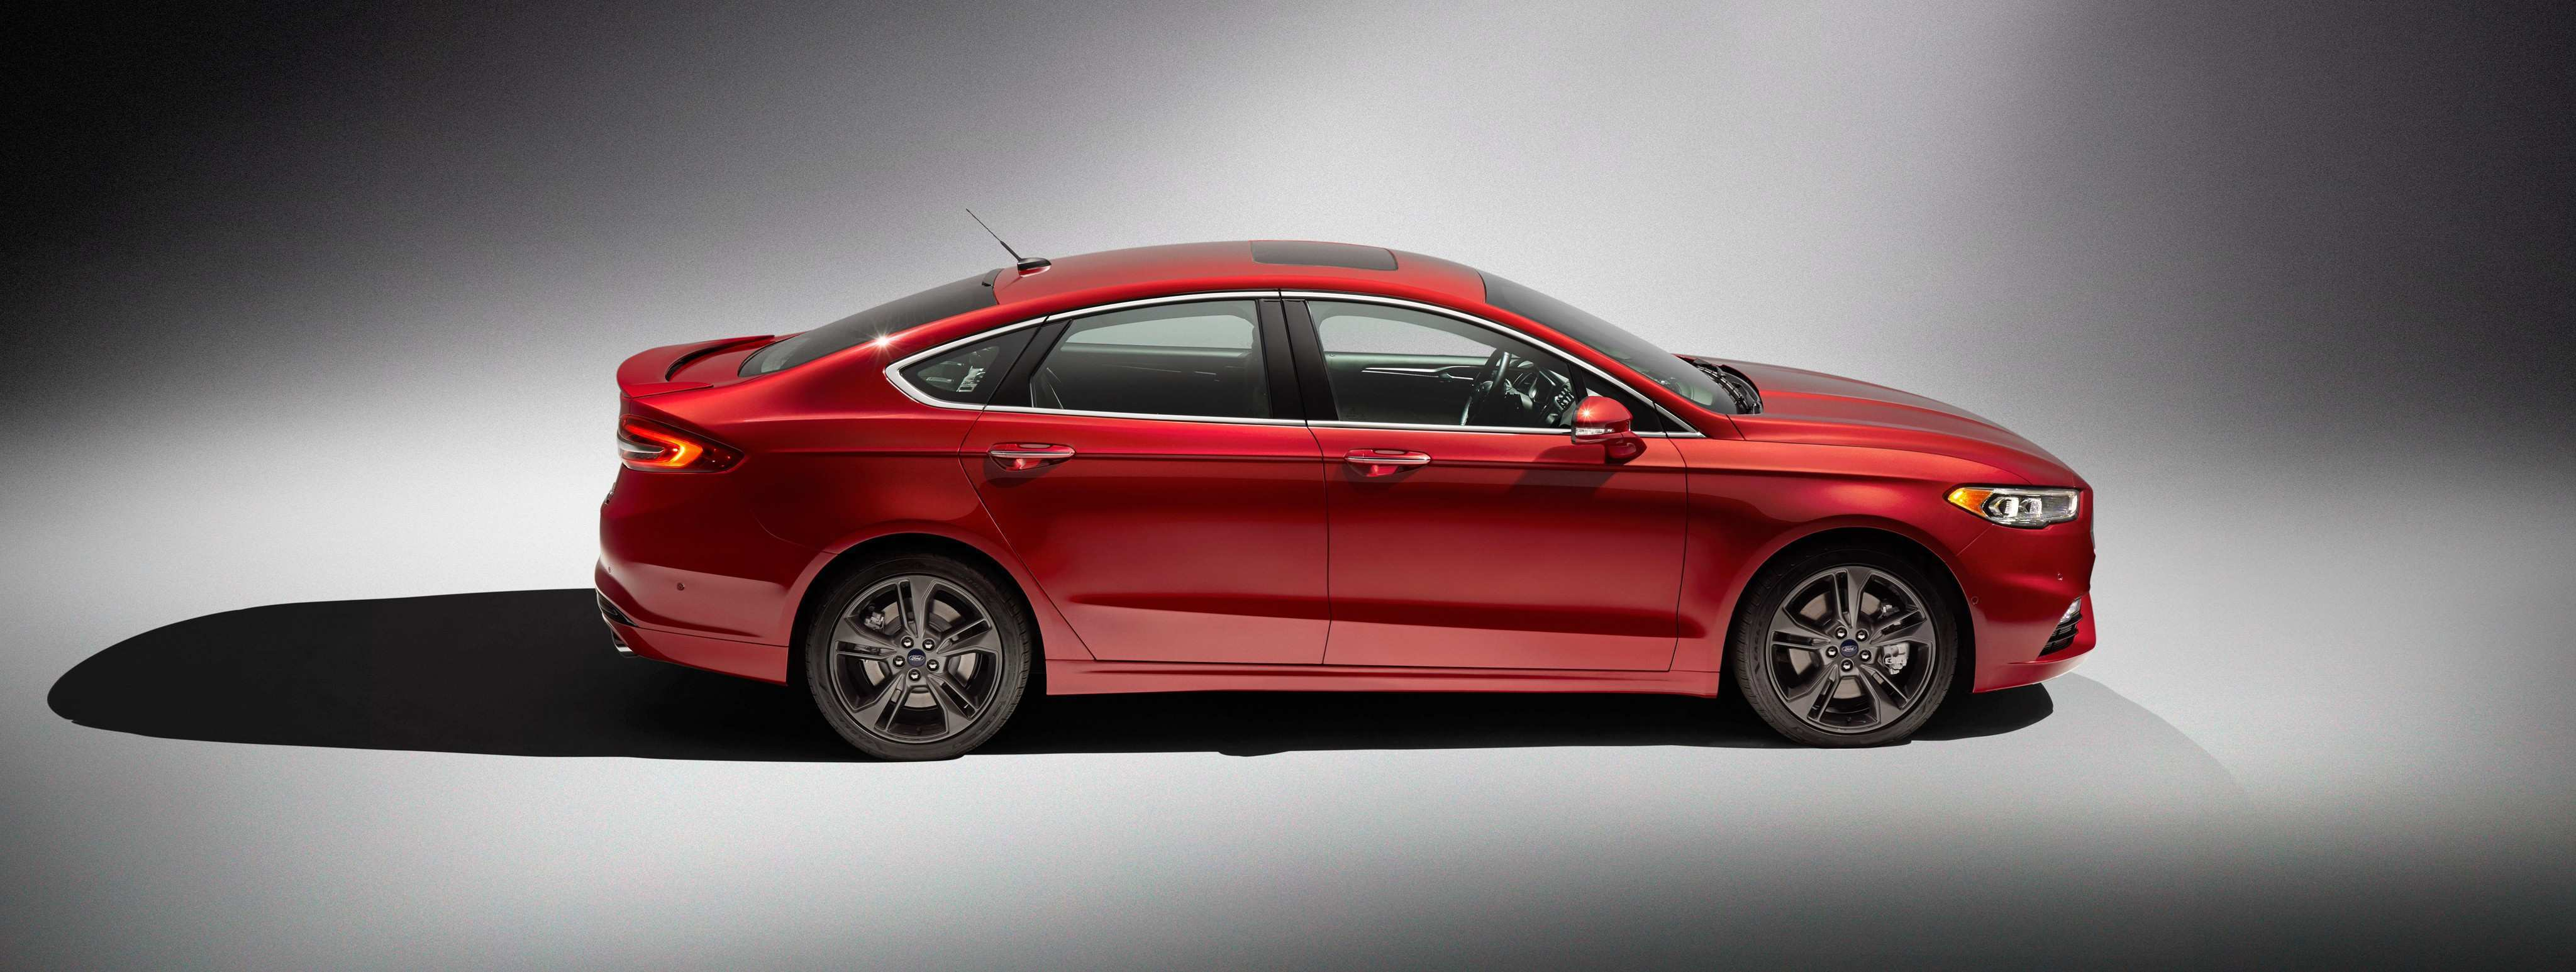 75 Great 2020 Ford Fusion Redesign Price by 2020 Ford Fusion Redesign